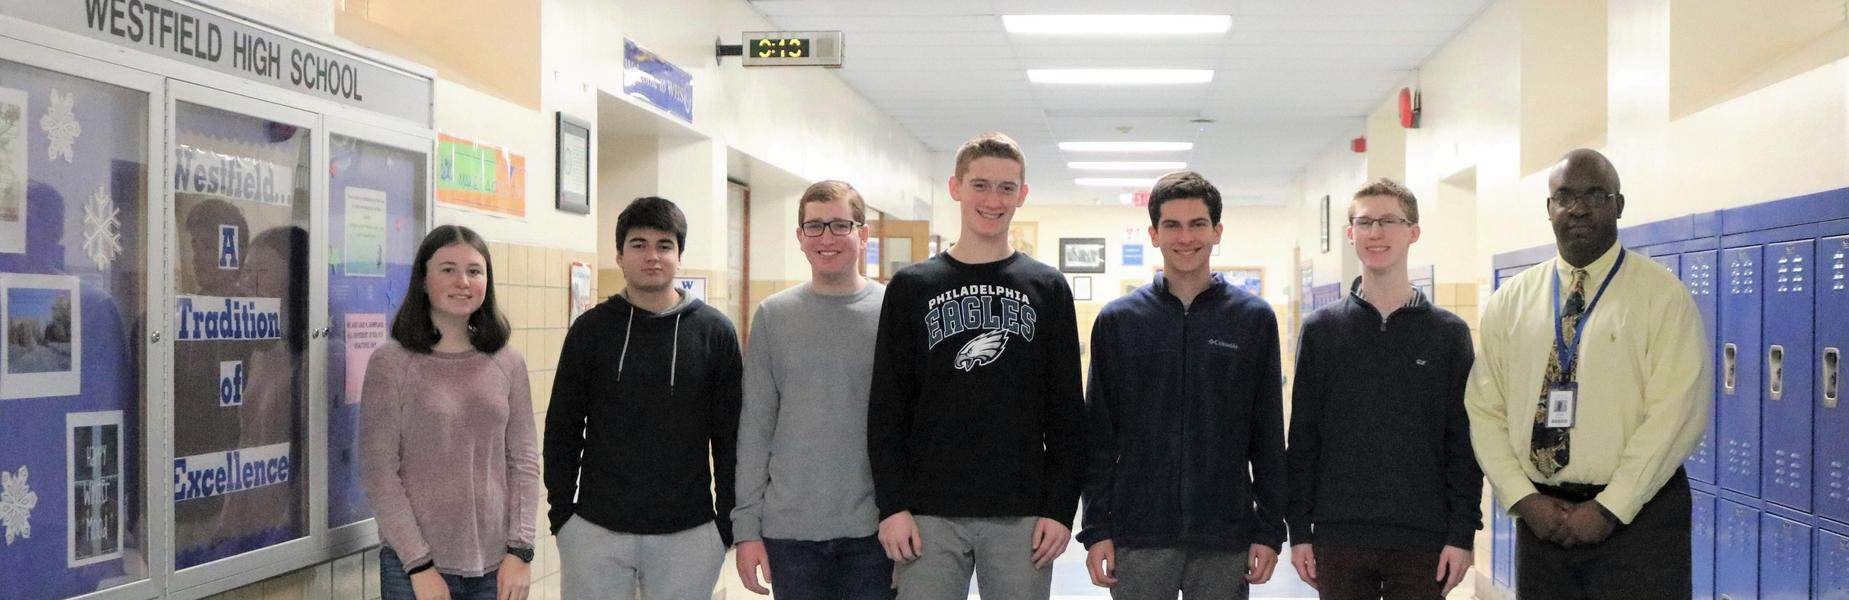 Six  Westfield High School students recently achieved the highest score possible on portions of SAT and ACT standardized tests.  The six students are pictured here with WHS principal Dr. Derrick Nelson.